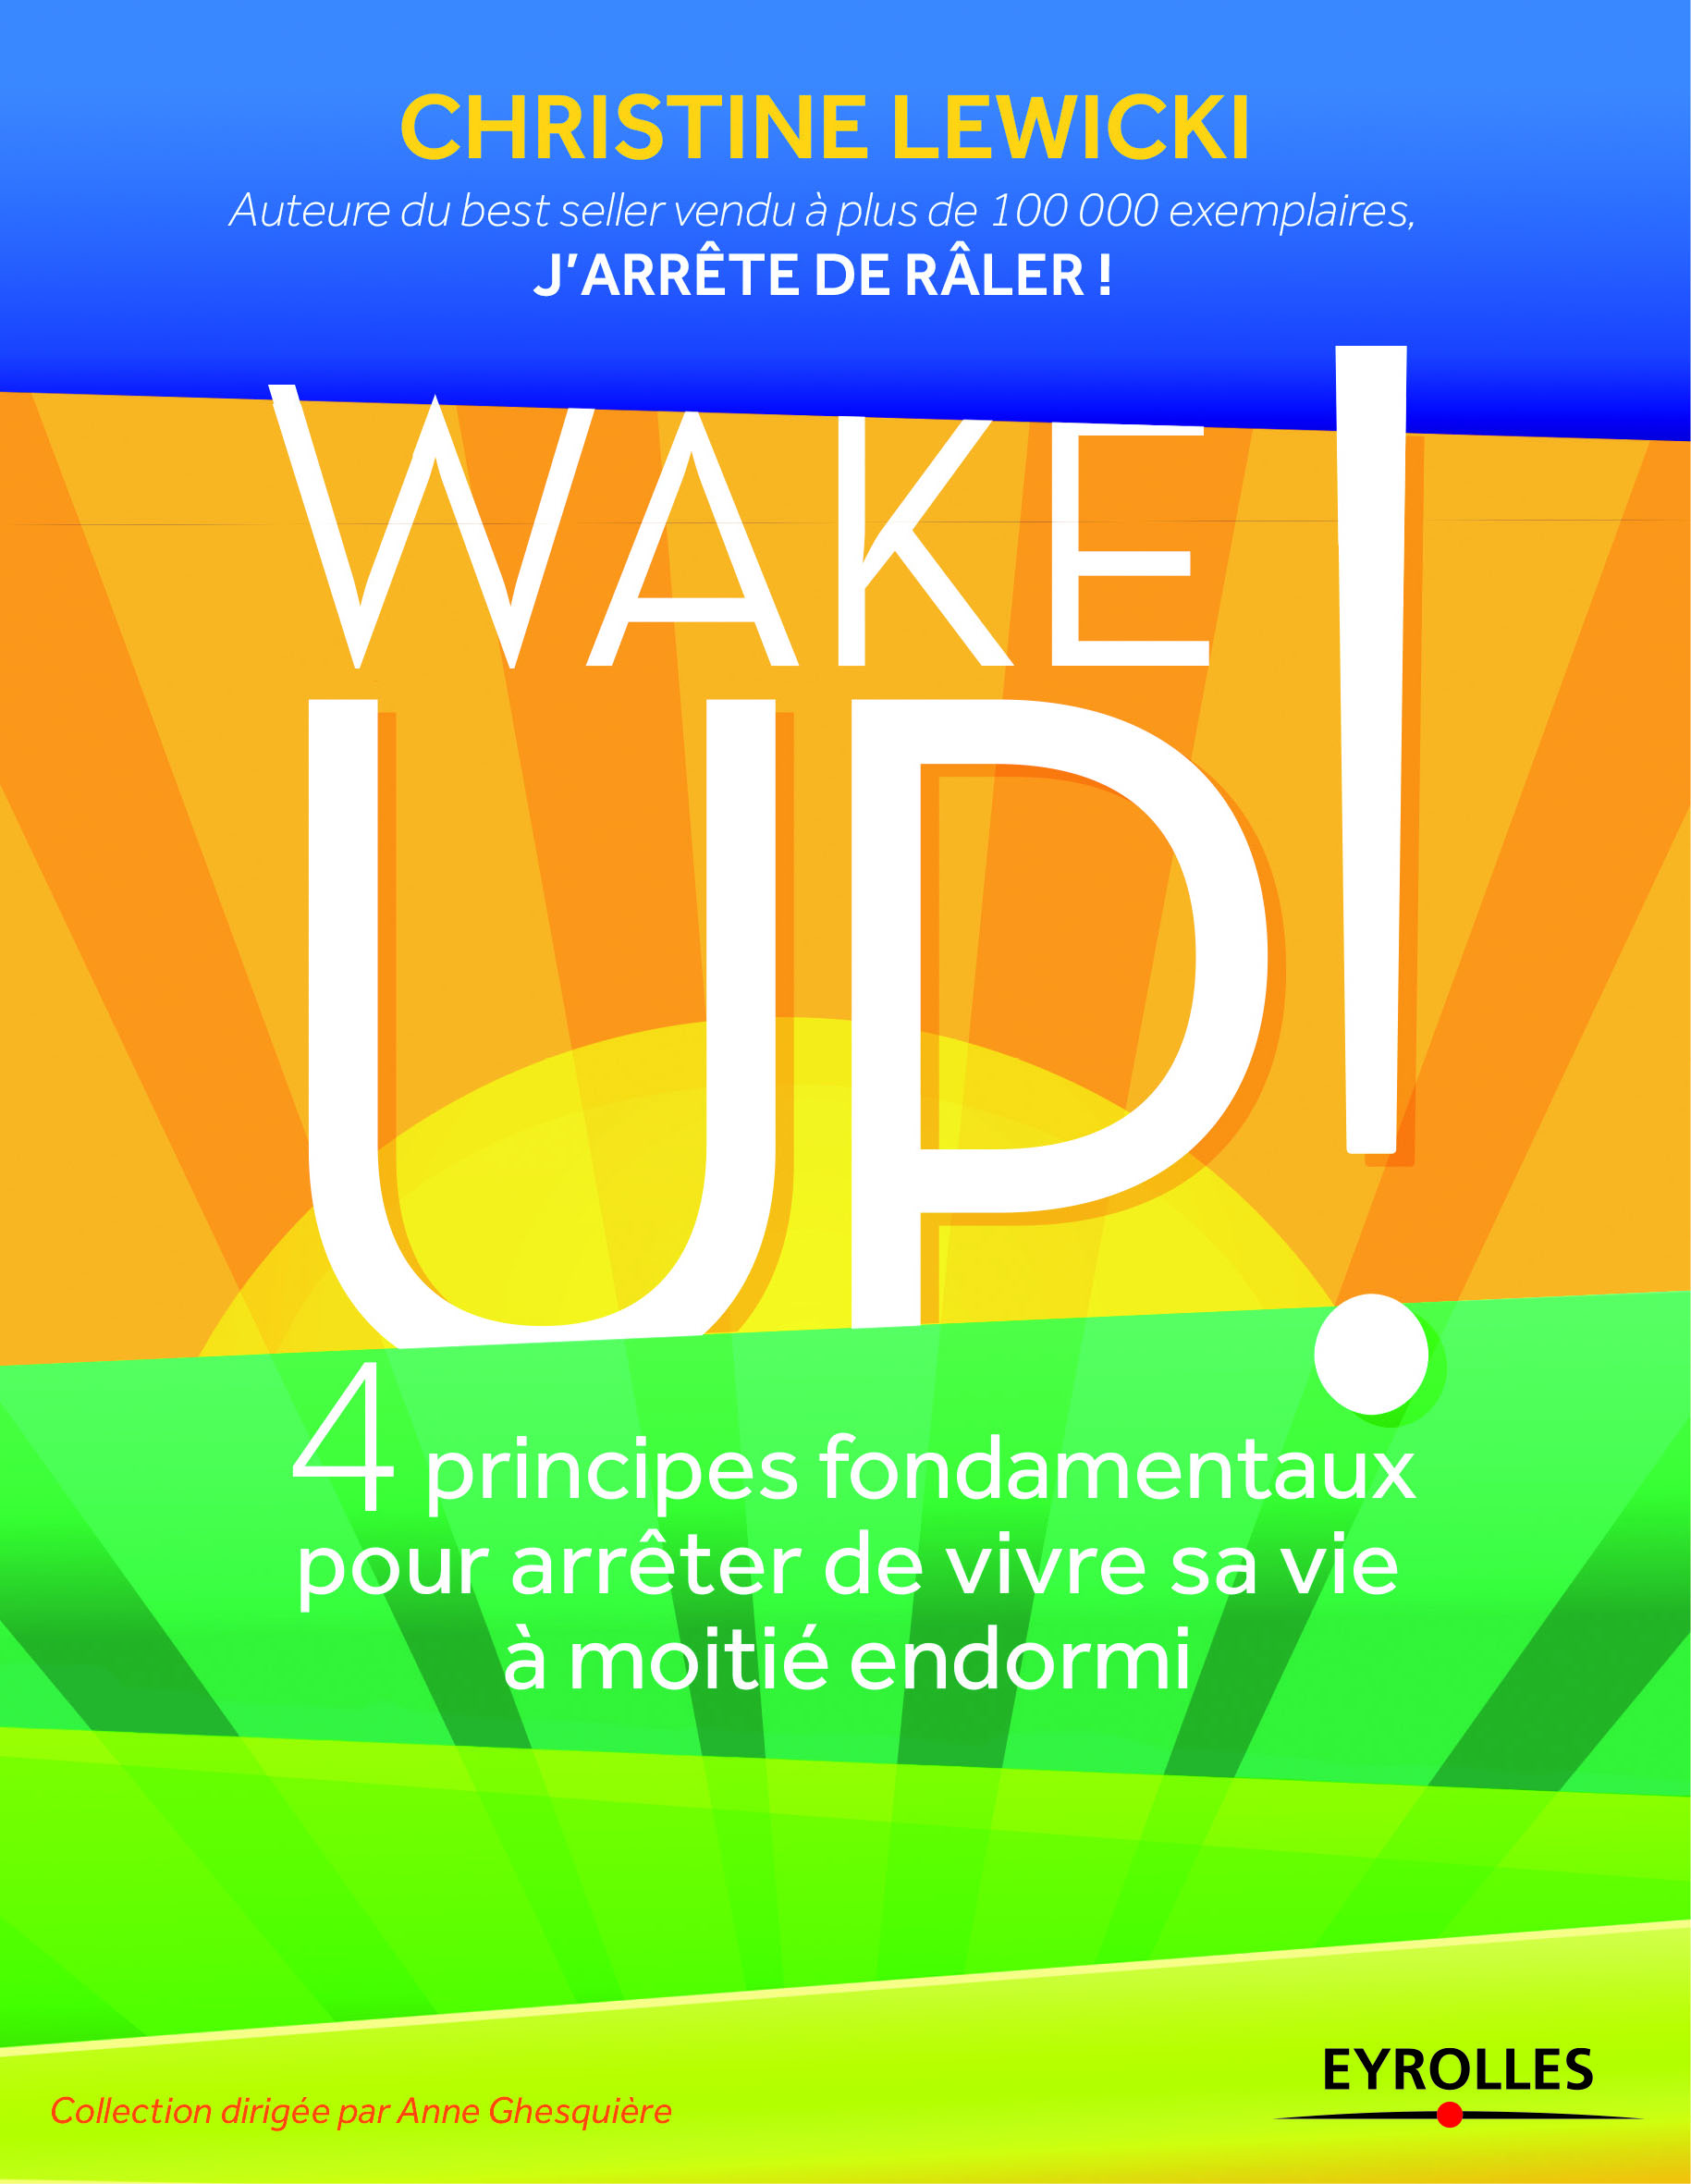 WAKE UP! by Christine Lewicki